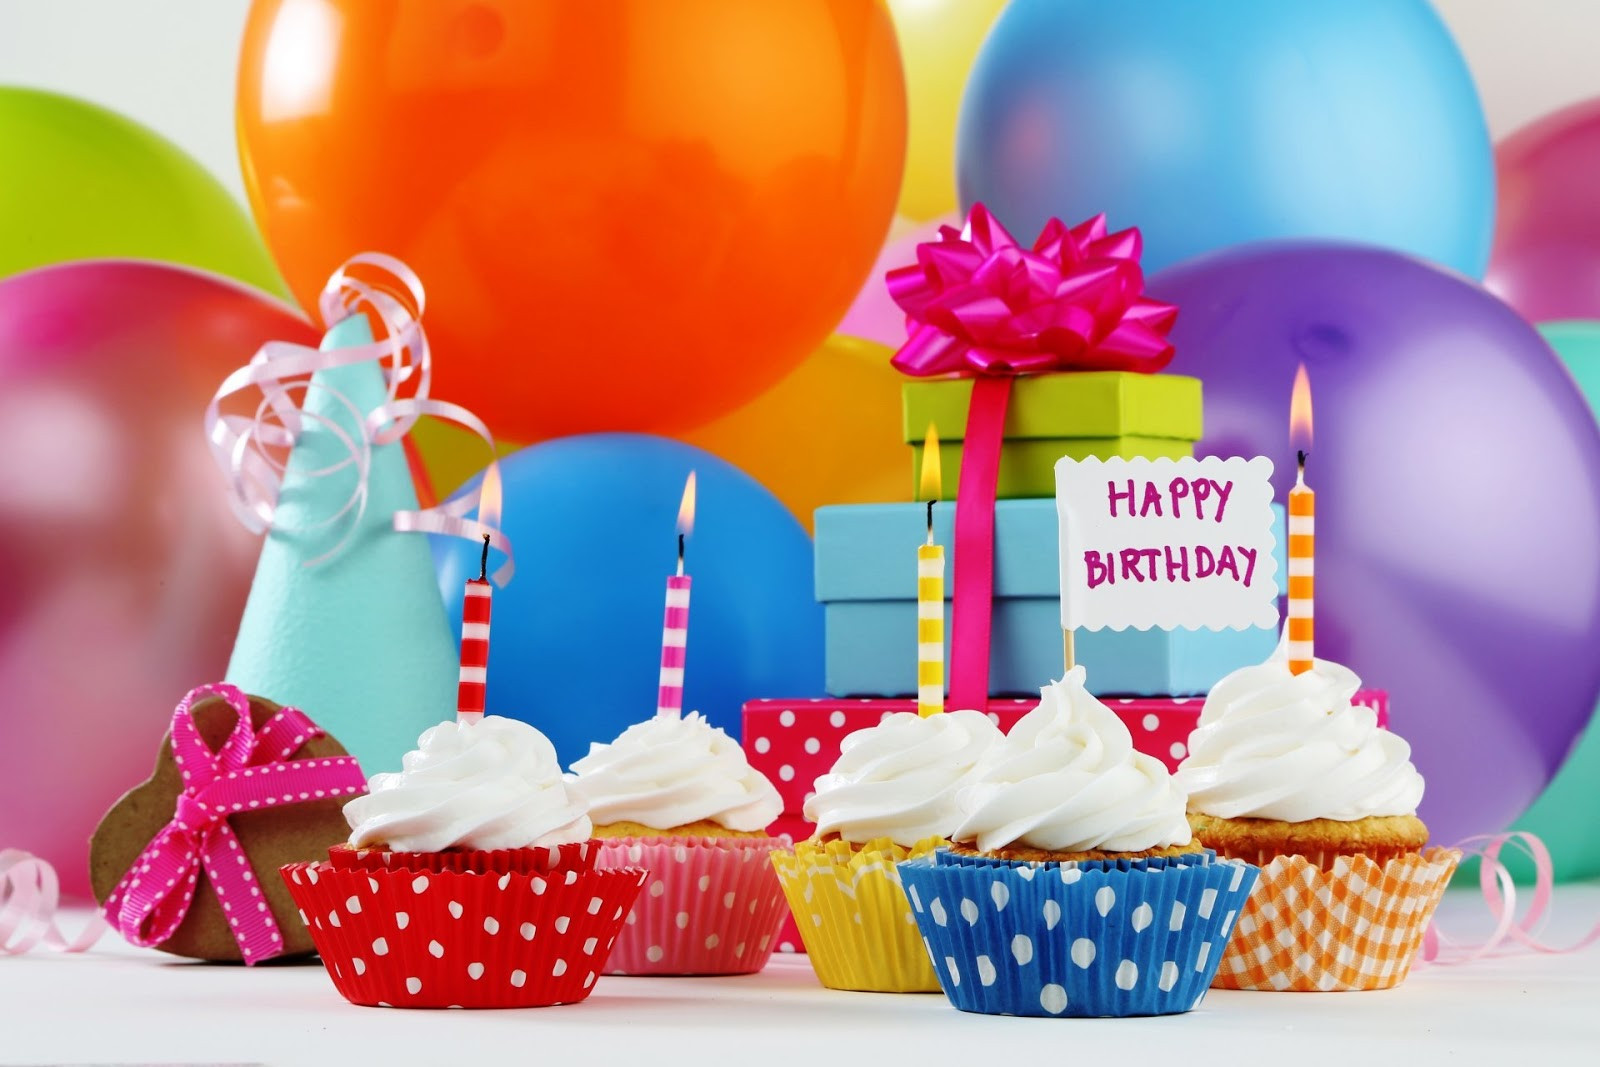 Birthday Wishes To Colleague  Happy Birthday Wishes Quotes for Coworker Colleague